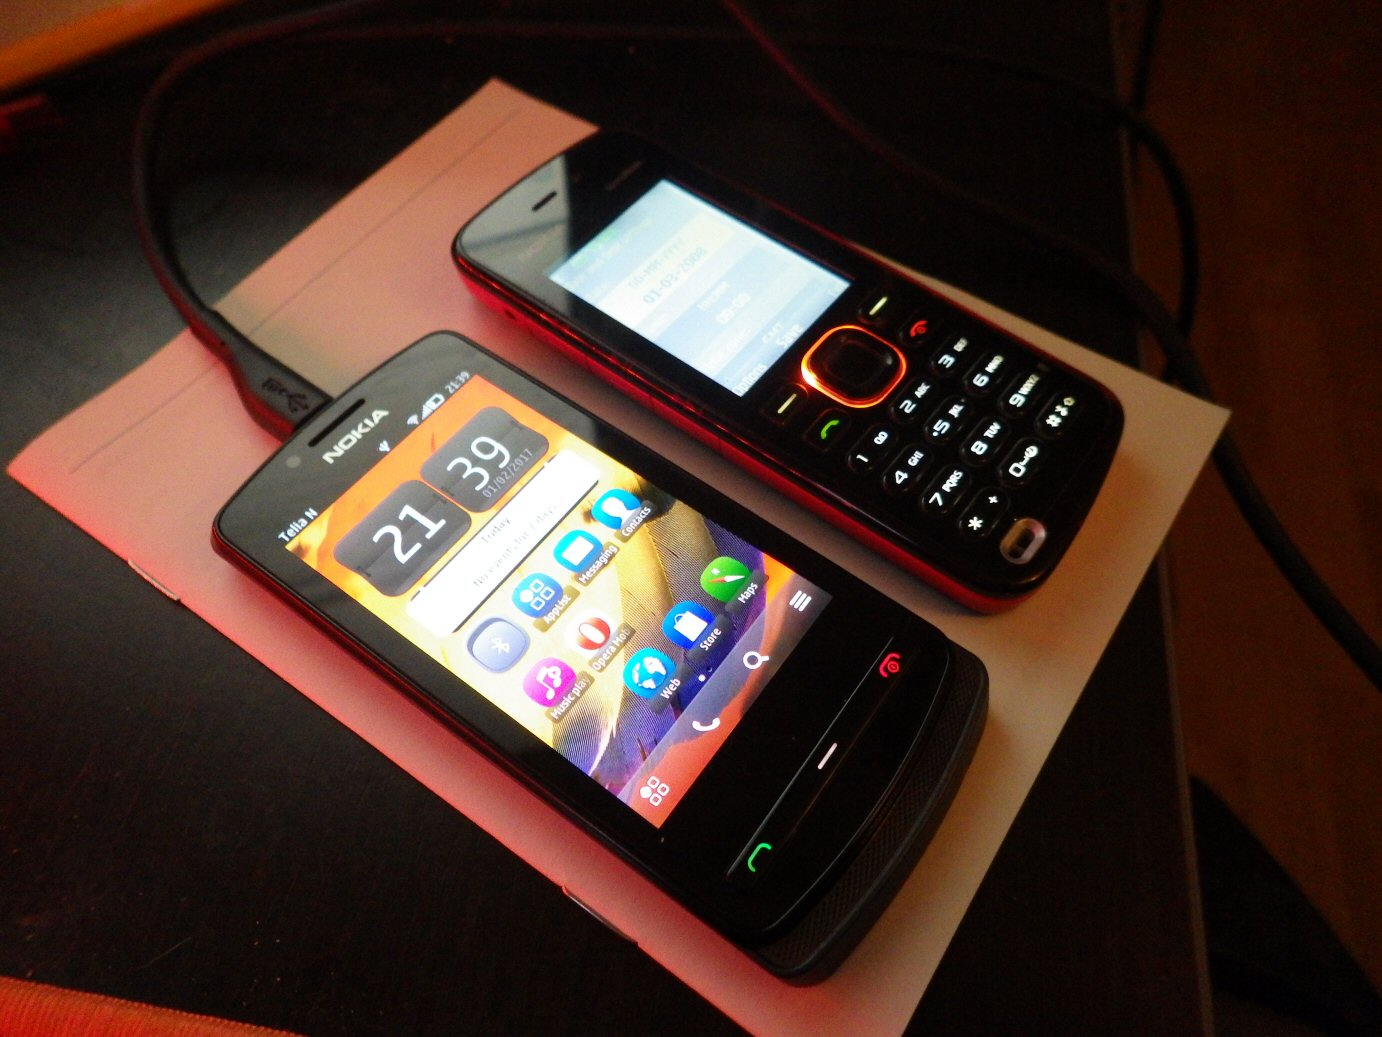 Nokia 700 and Xpress Music 5220